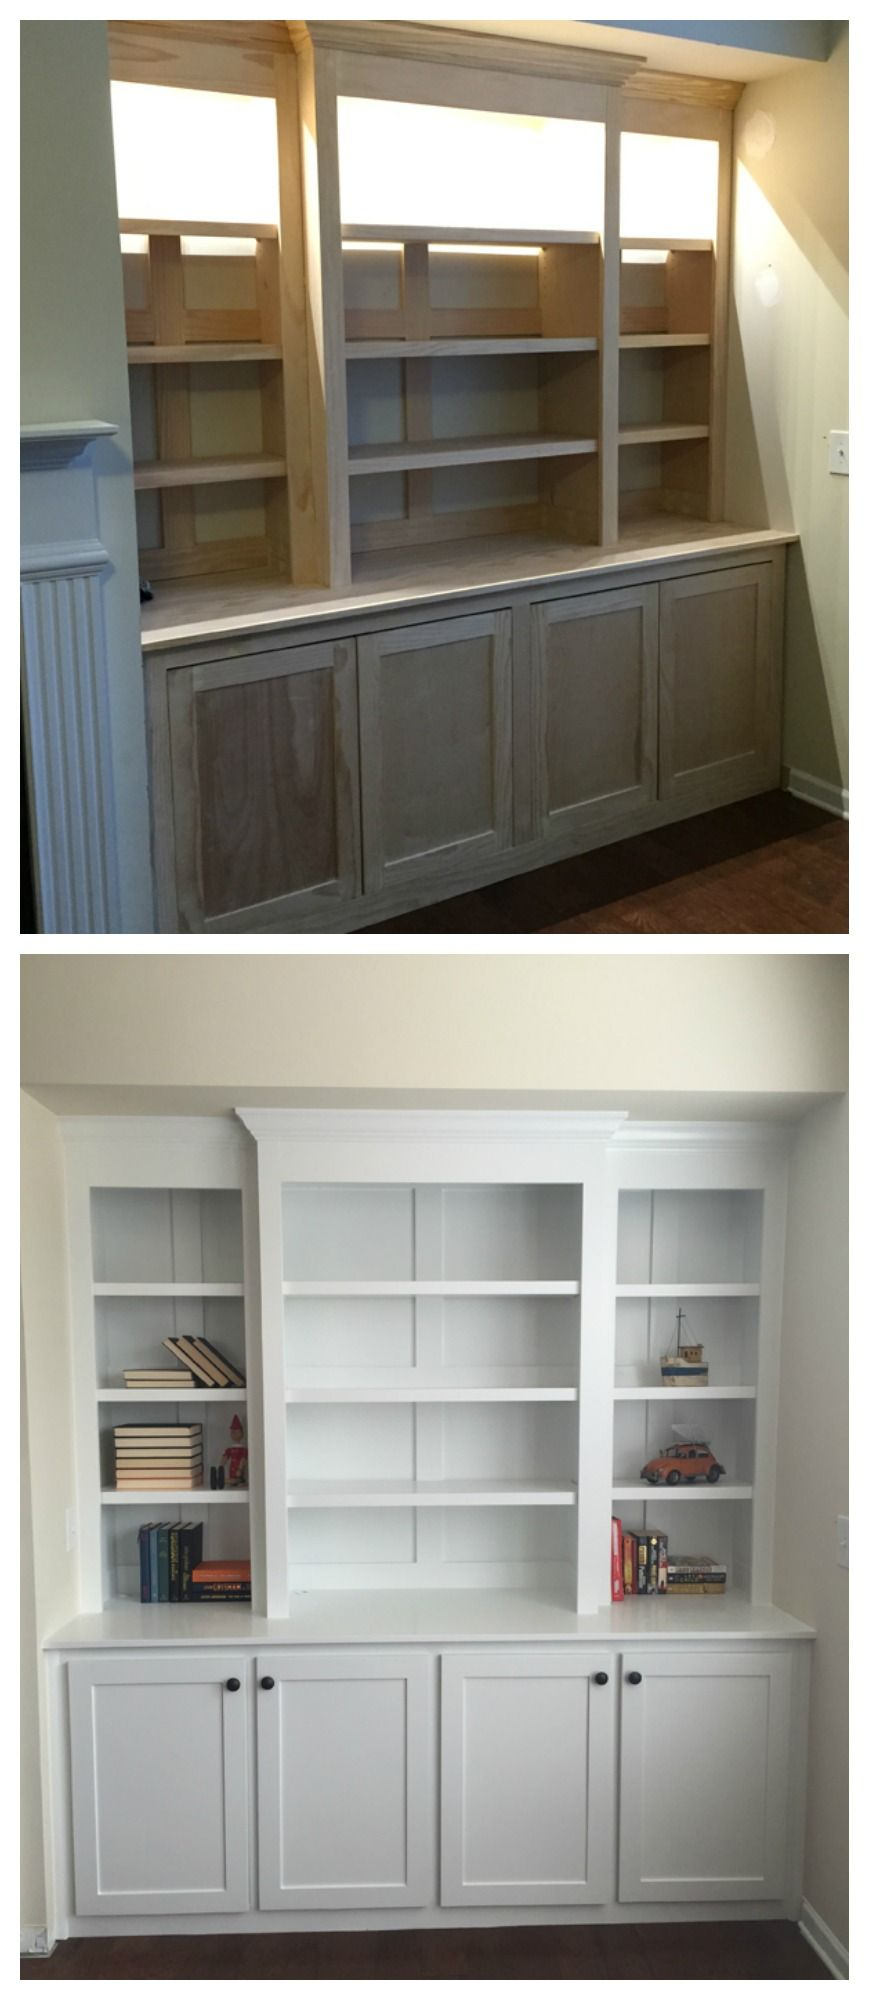 Amazing diy built-in buffet shelving from plywood and pine ...